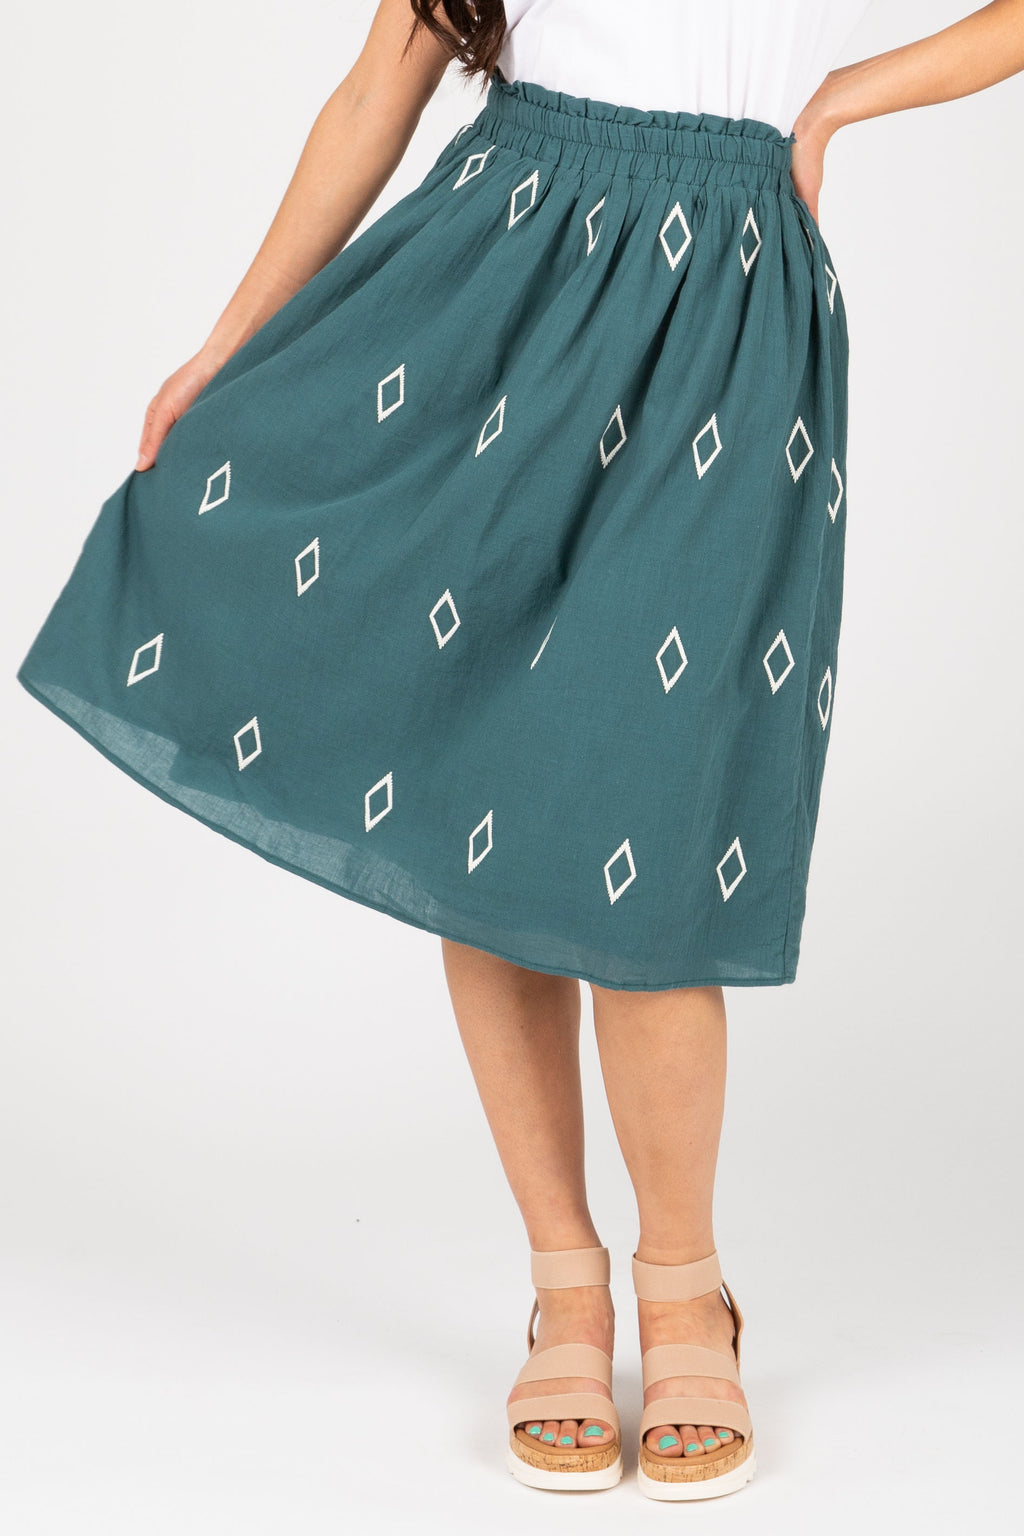 The Amia Diamond Embroidered Skirt in Teal